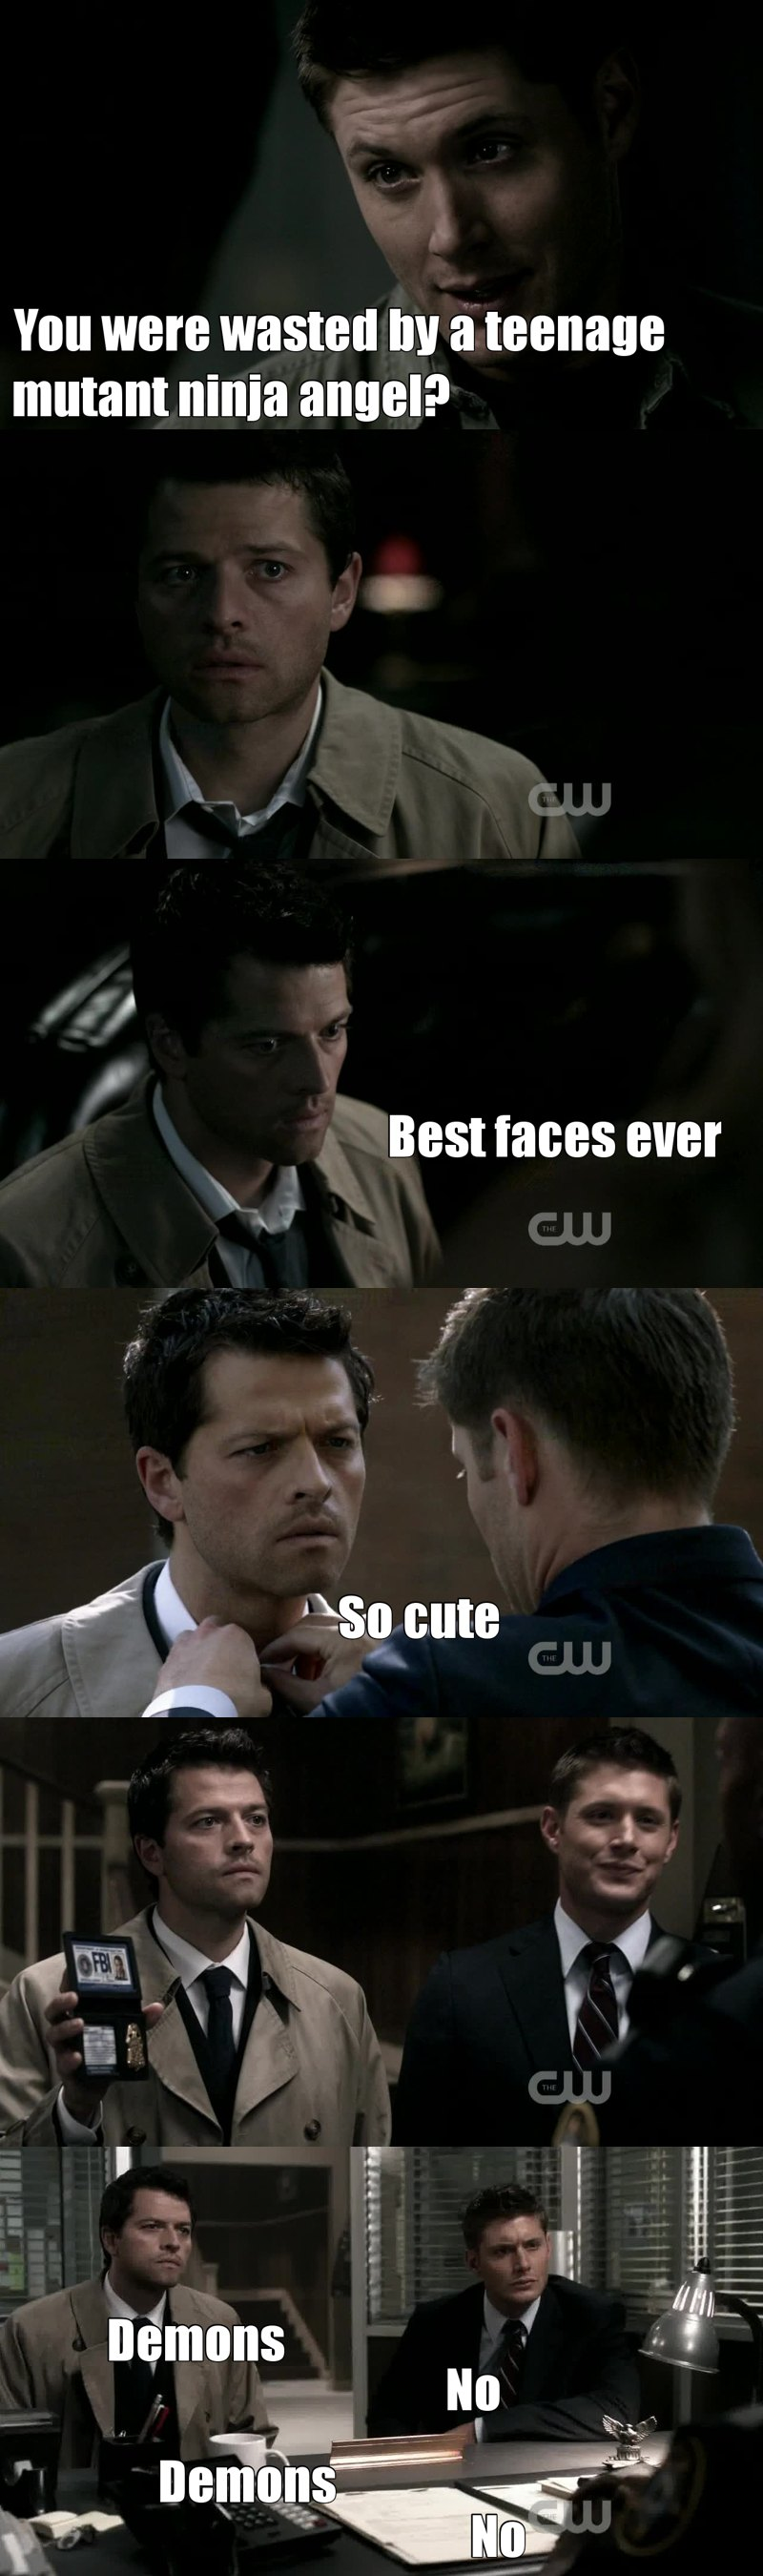 Destiel 😍 I laughed so hard all this episode! Cass is just awesome, the actor is really really good.